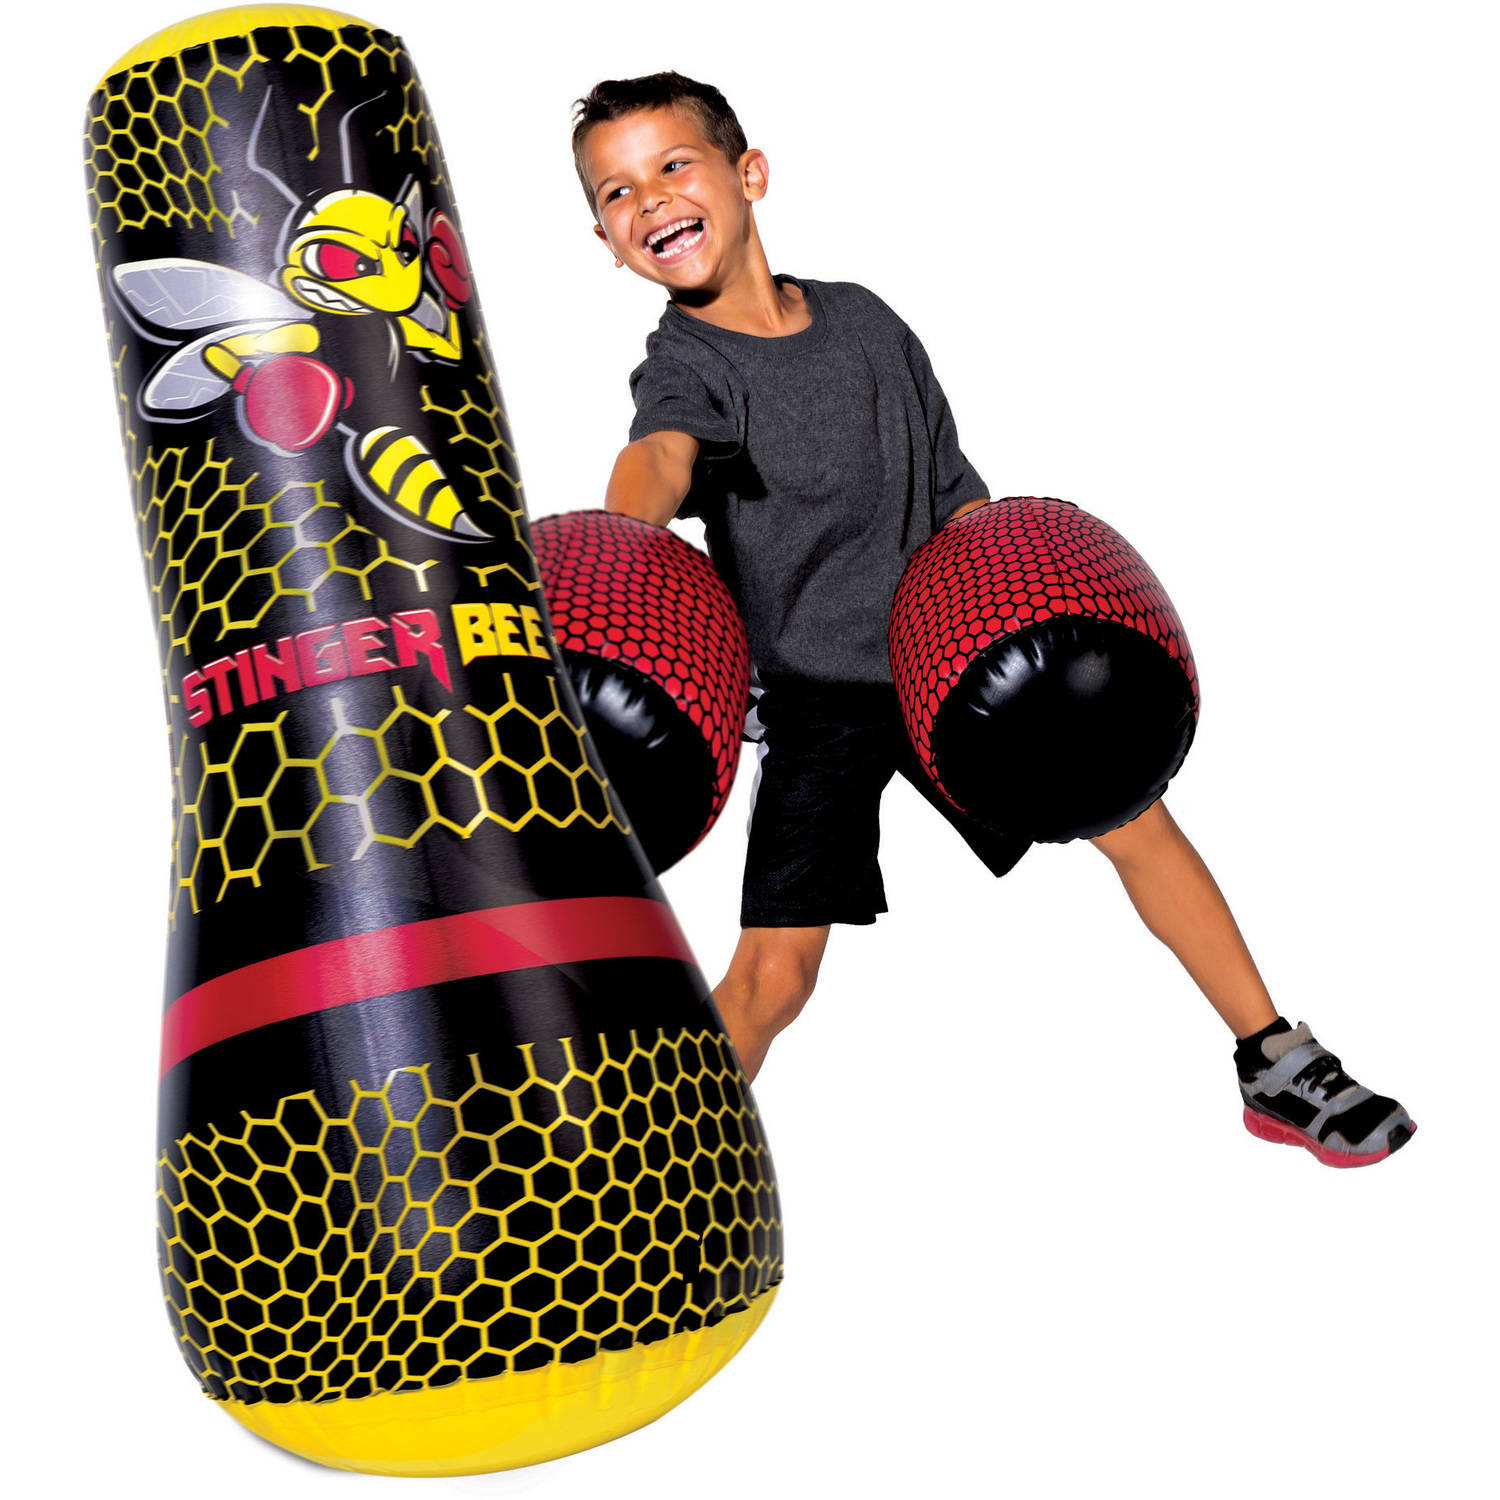 Franklin Sports Stinger Bee Punching Bag and Gloves by Franklin Sports